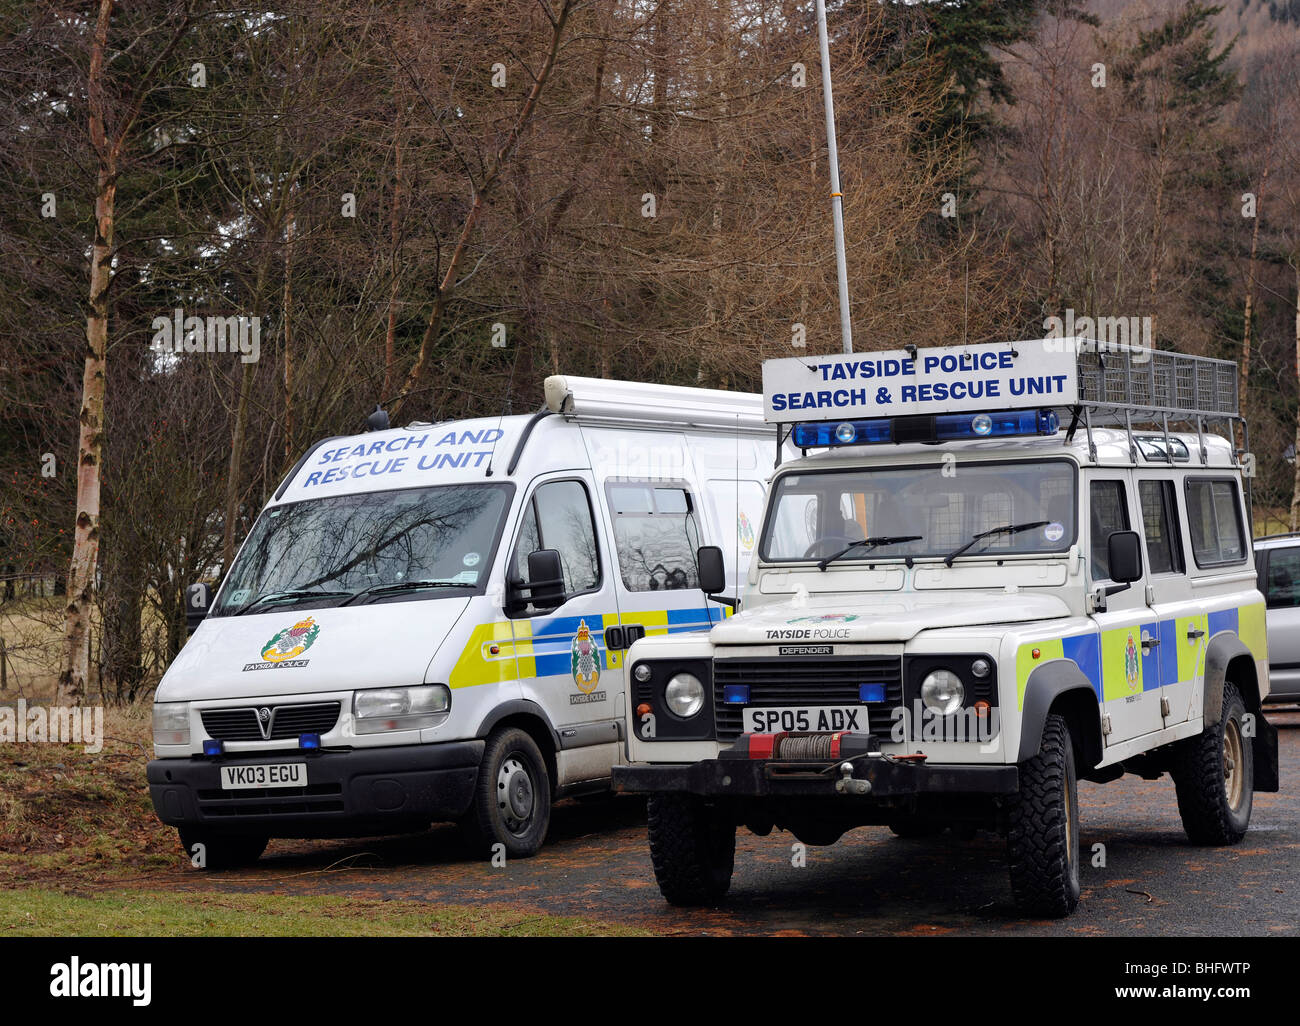 Mountain Rescue Vehicles of the Tayside Police, Glen Clova, Angus, Scotland, UK - Stock Image